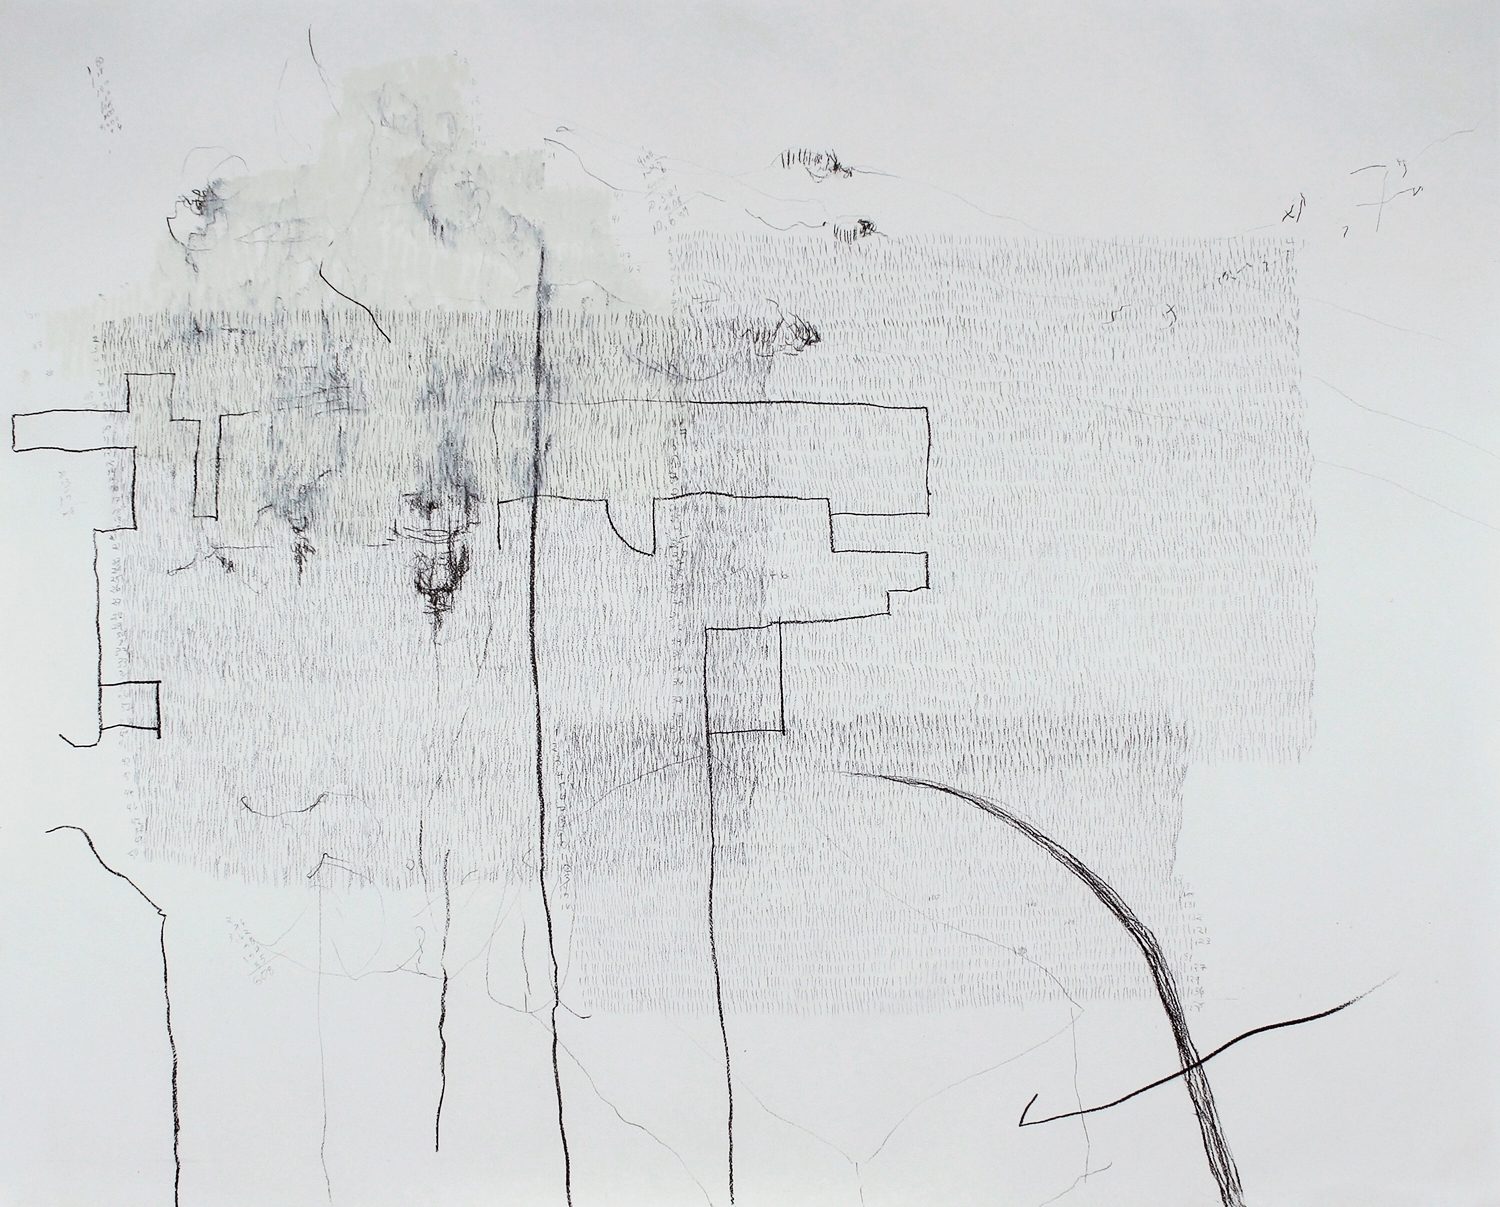 """10,639 Steps to Catch My Breath , Graphite, charcoal, oil on paper,  14.2"""" x 17.5"""", 2010"""